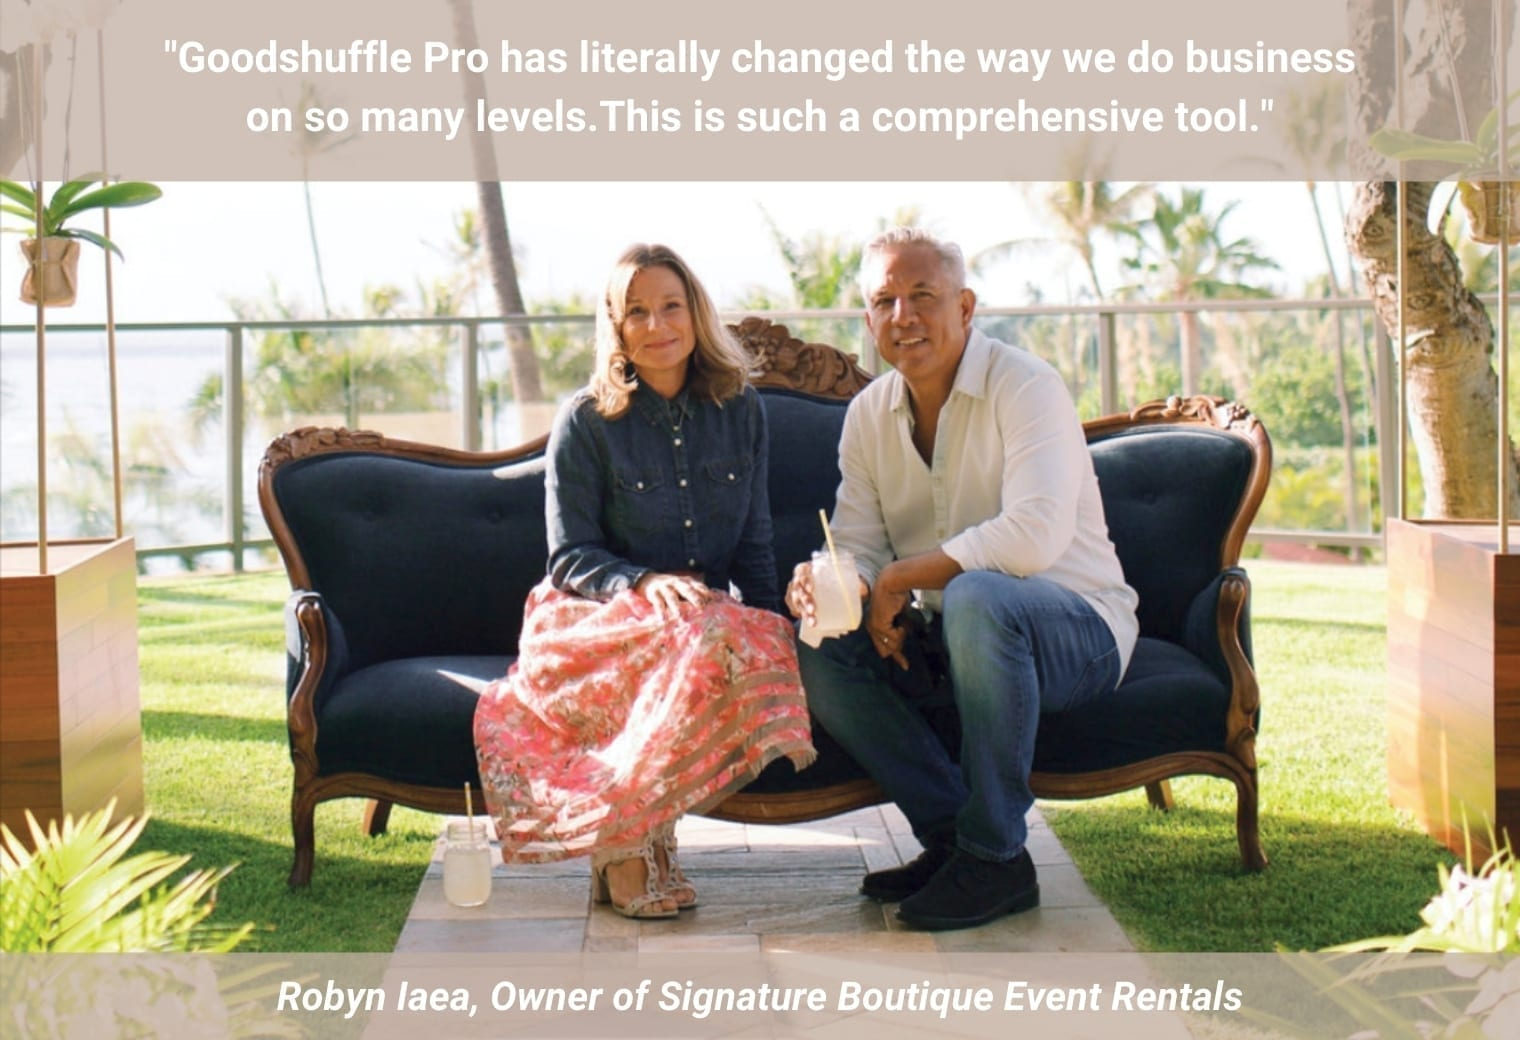 """""""Goodshuffle Pro has literally changed the way we do business on so many levels. Contracts are now consistently signed, clients love the photos of rentals items in proposals, and we receive deposits and payments much faster than before. This is such a comprehensive tool for rental companies."""" - Robyn Iaea, owner of Signature Boutique Event Rentals in Maui"""